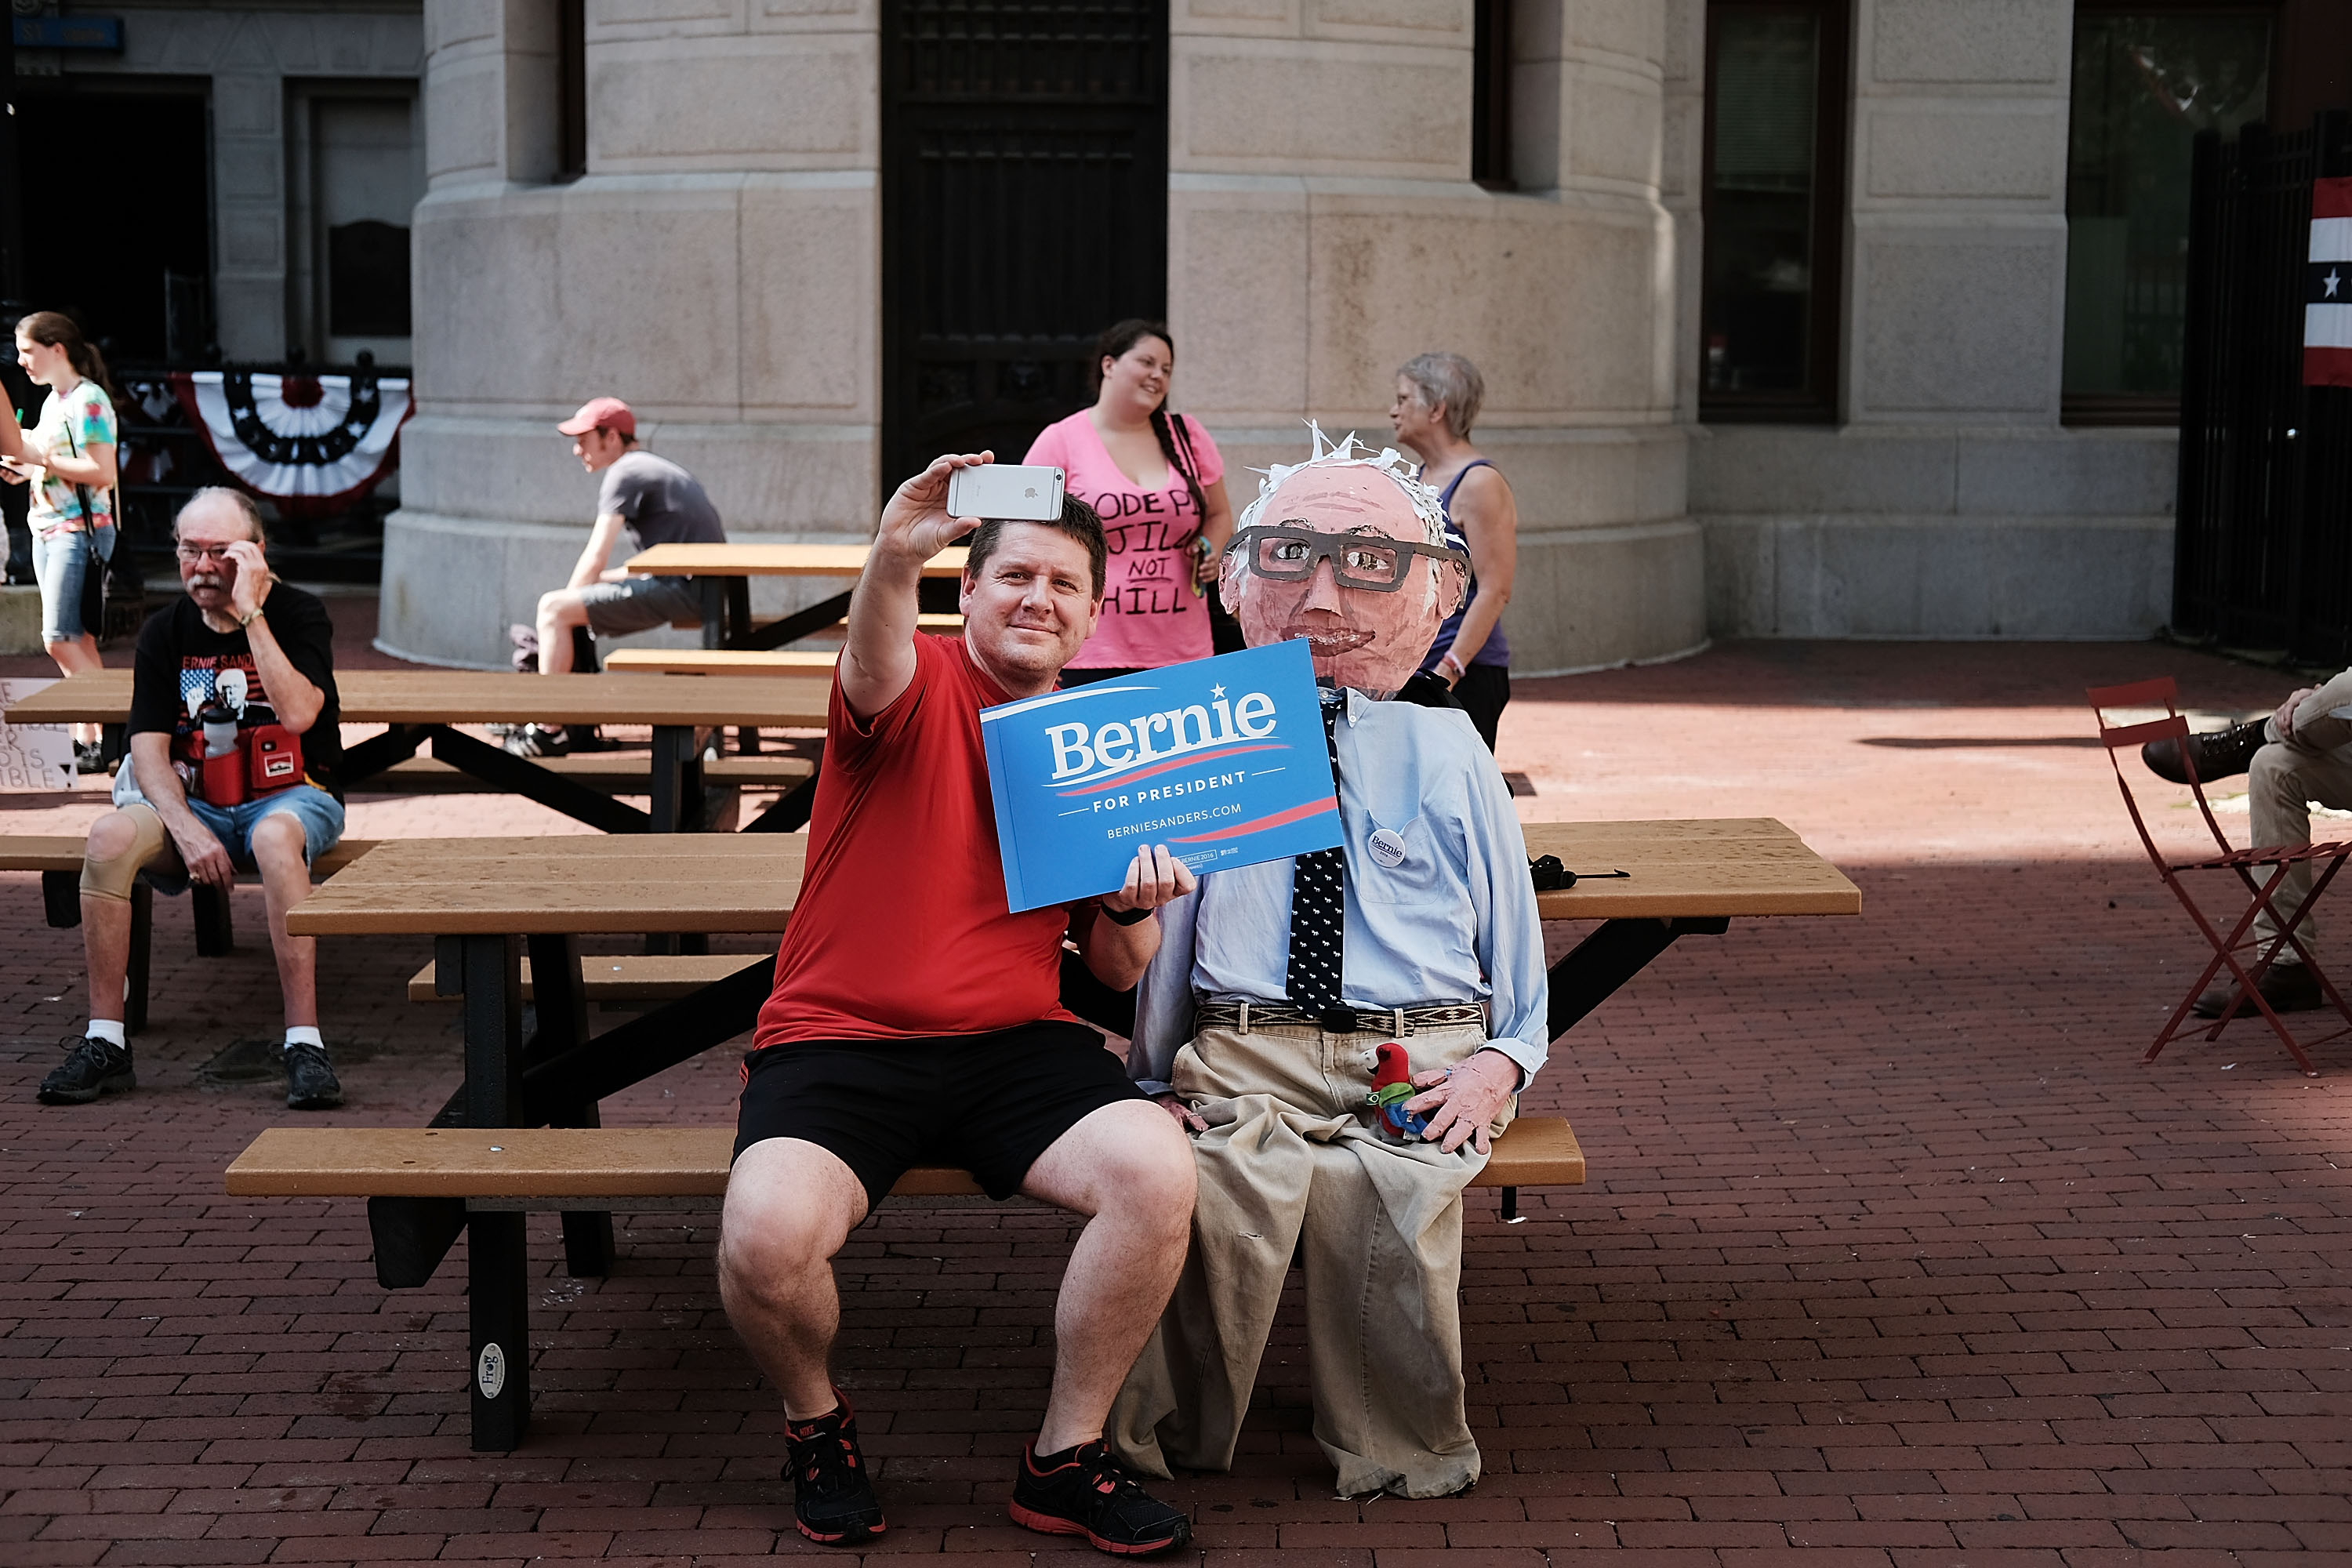 A Bernie Sanders supporter takes a selfie with a Sanders puppet before a march through downtown Philadelphia on the first day of the Democratic National Convention.  (Spencer Platt/Getty Images)